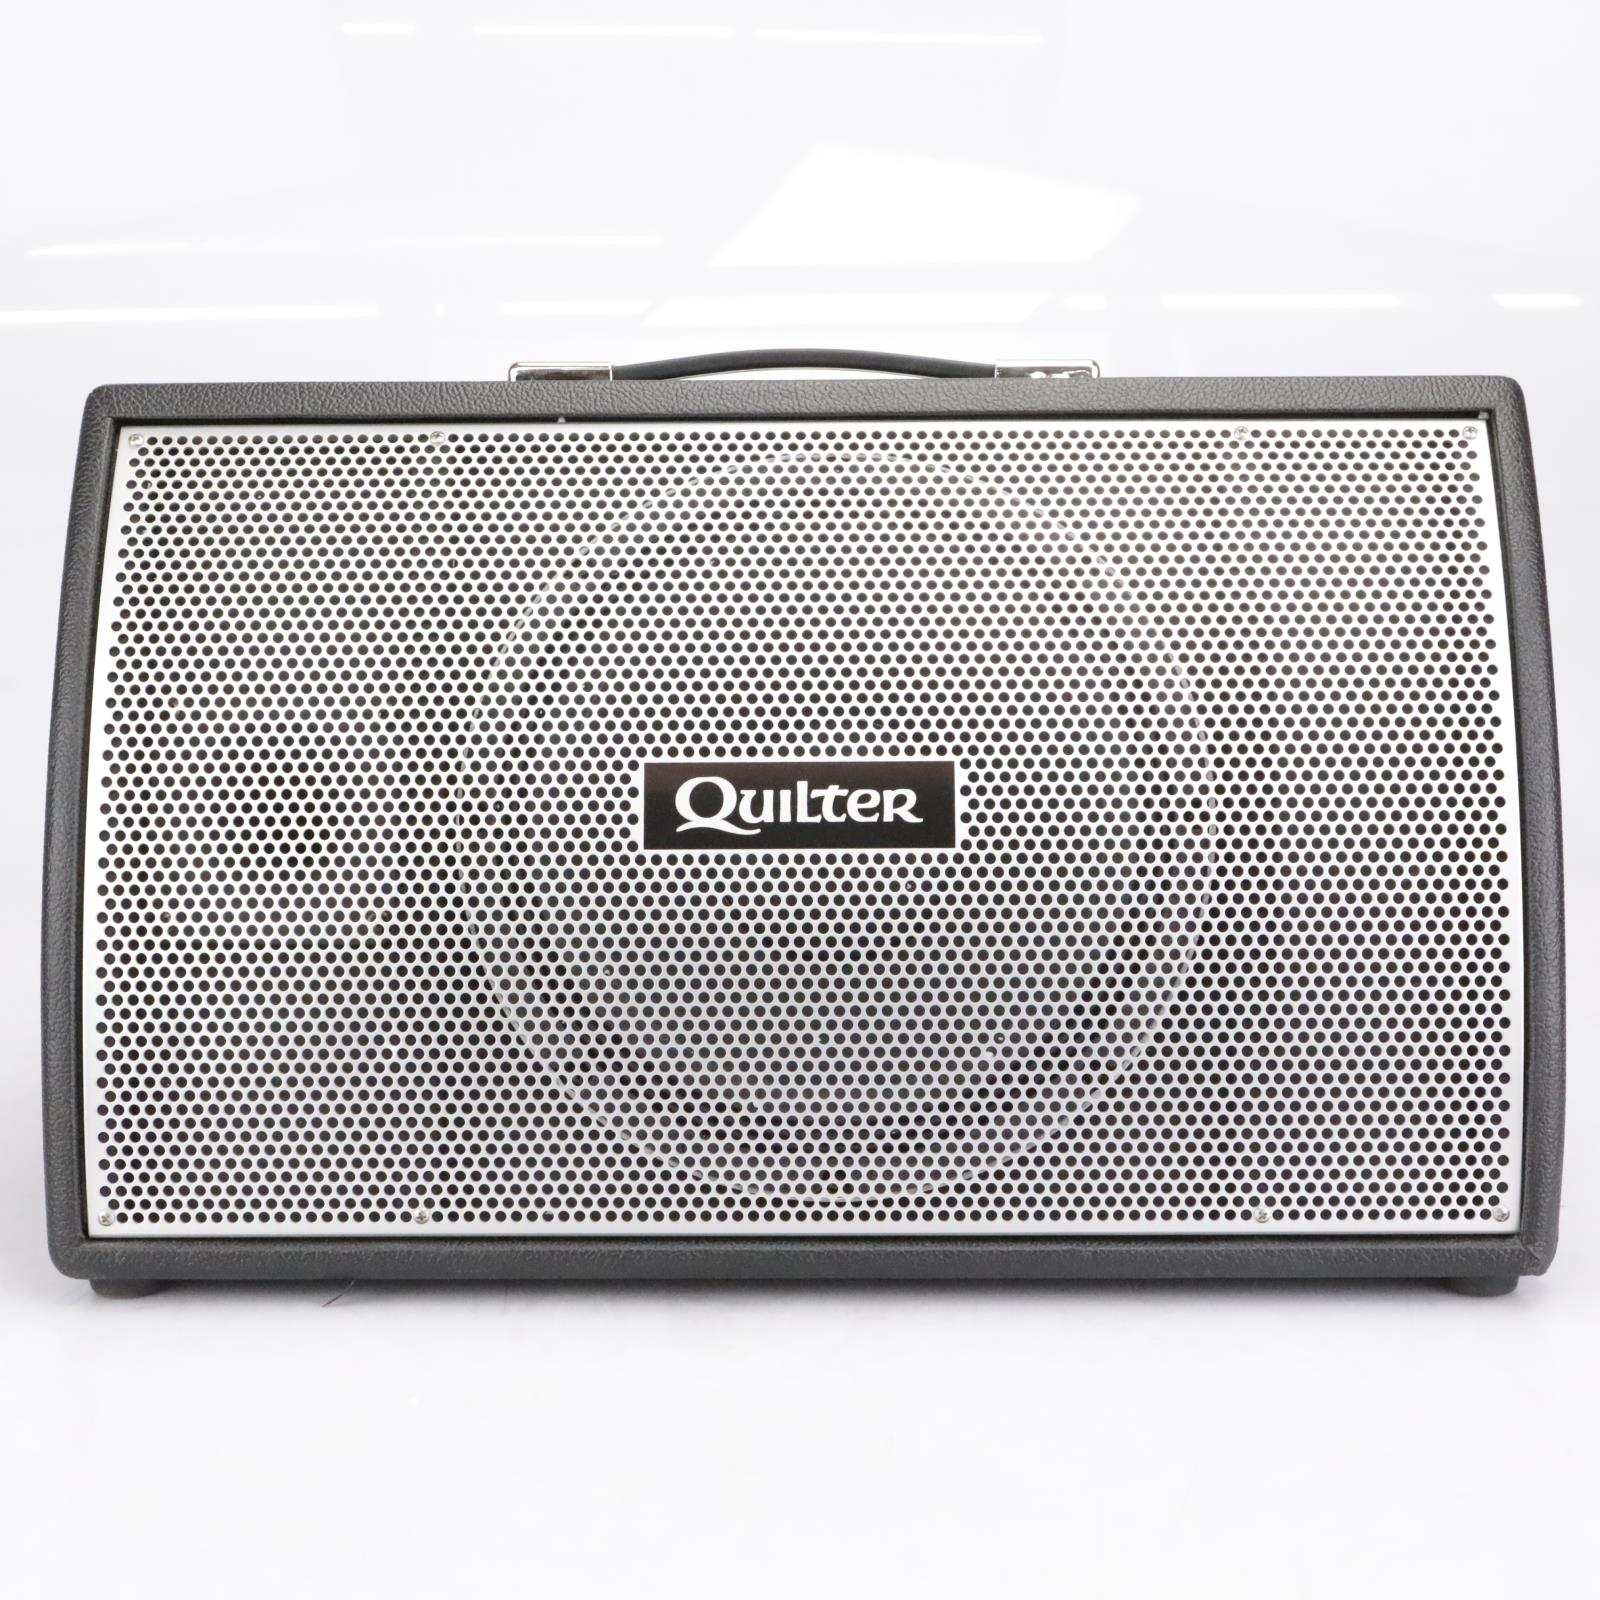 Quilter Bassliner 1x12W Wedged Extension Bass Cabinet #42693